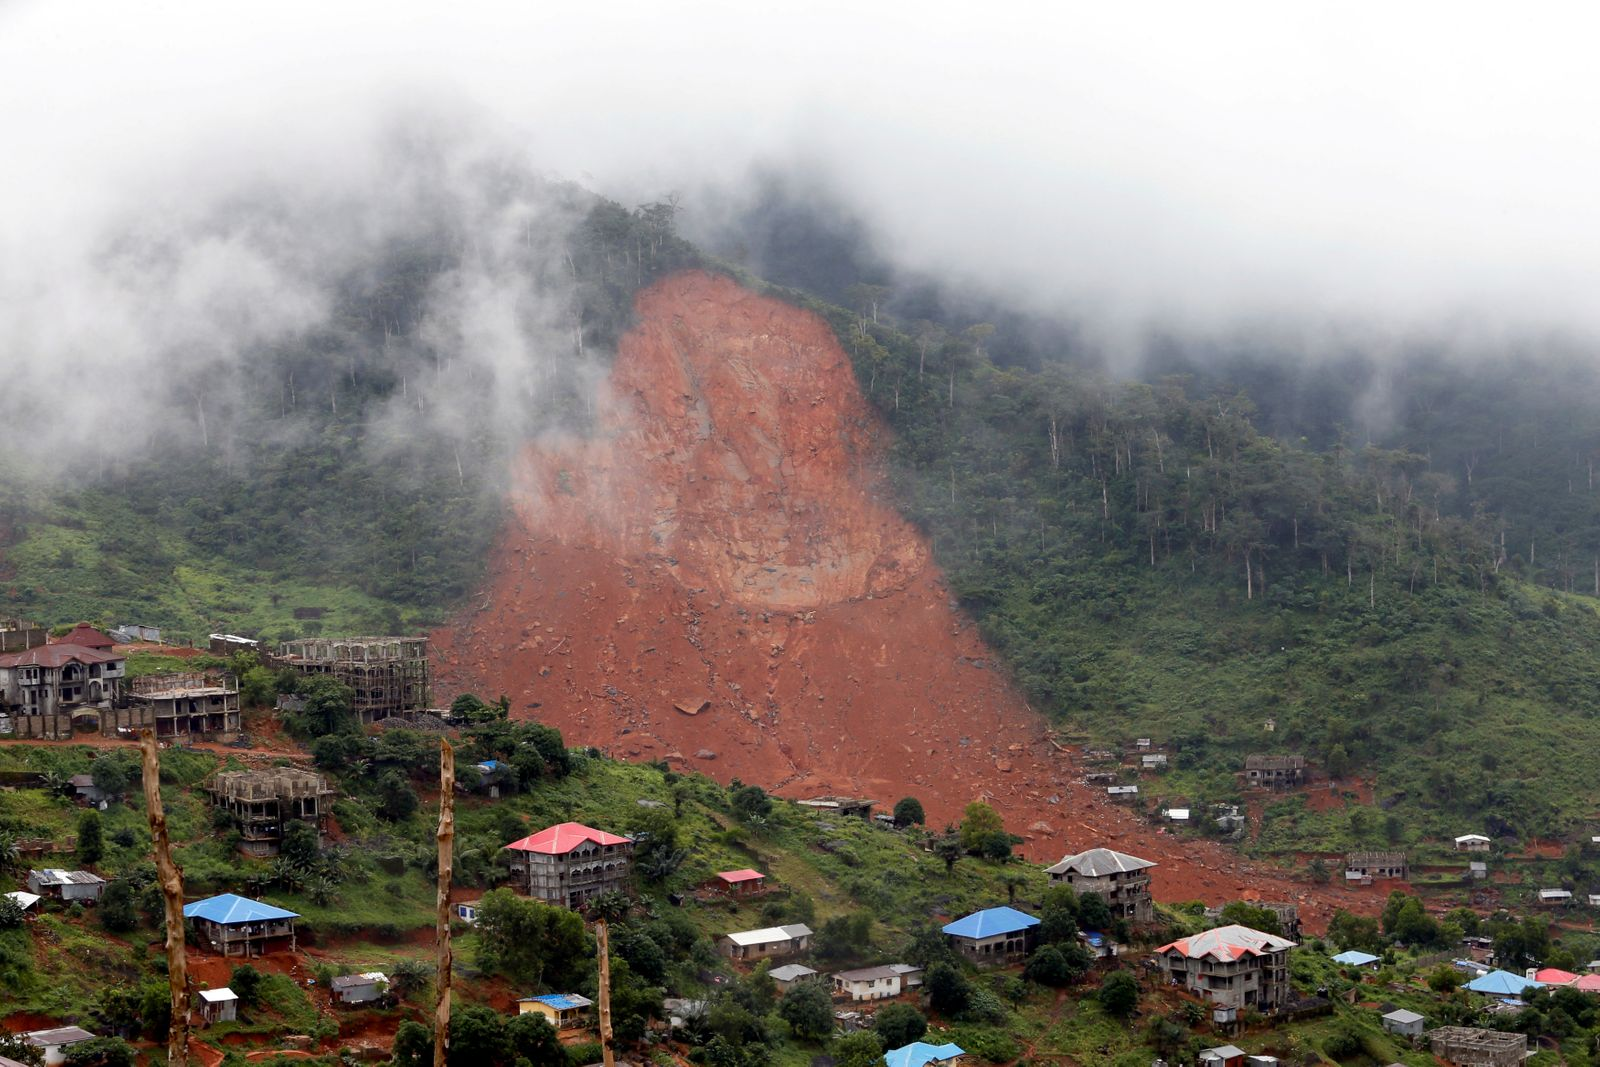 A general view of the mudslide at the mountain town of Regent